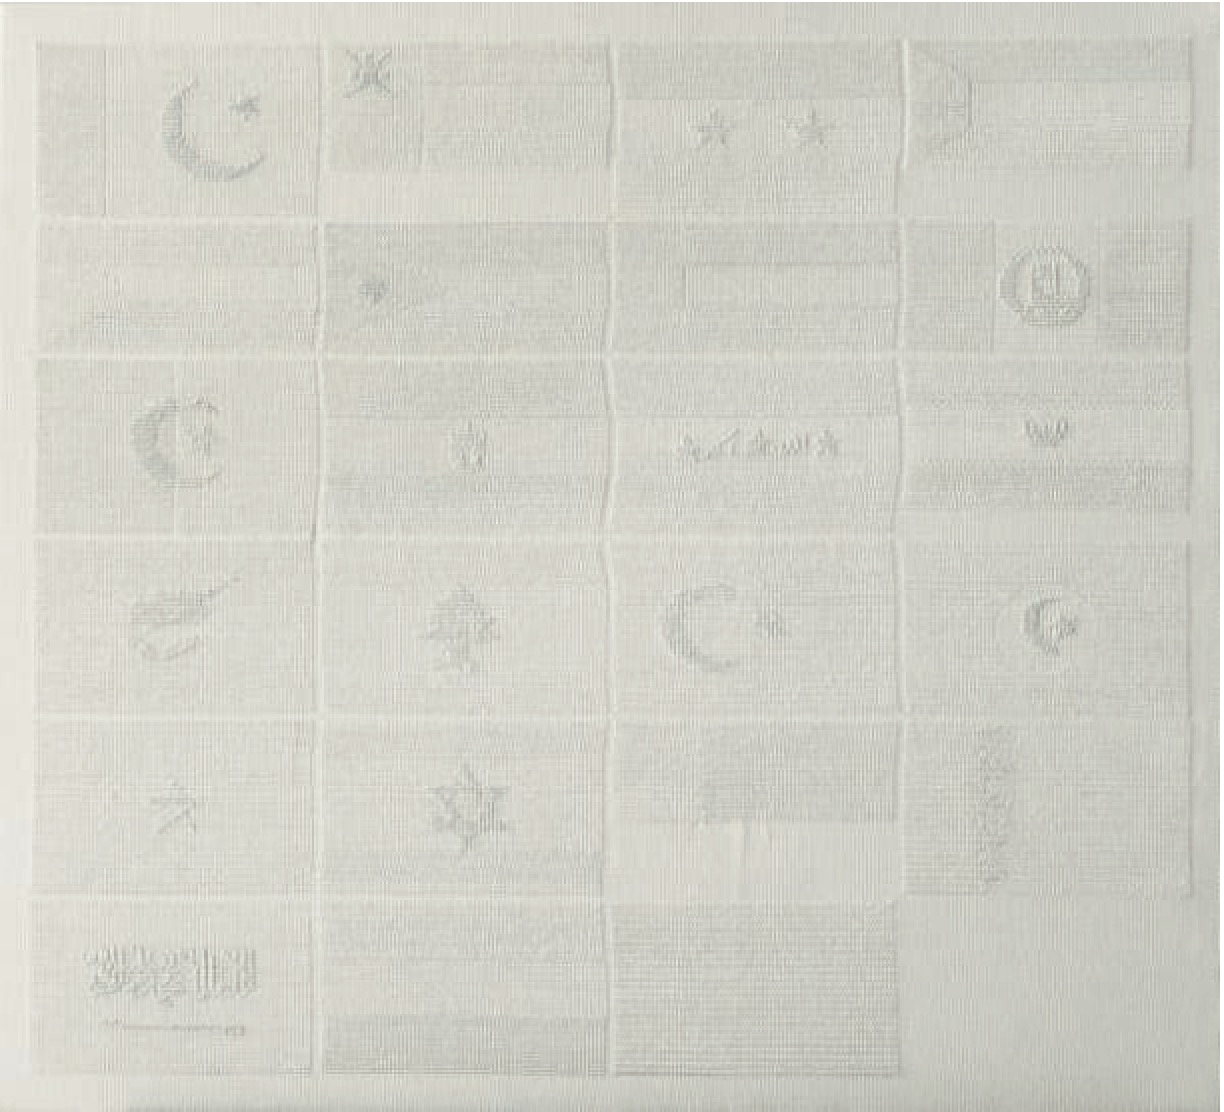 Untitled (White Flags # 1:1)-2012–13 - Cristiana de Marchi - Embroidery on canvas